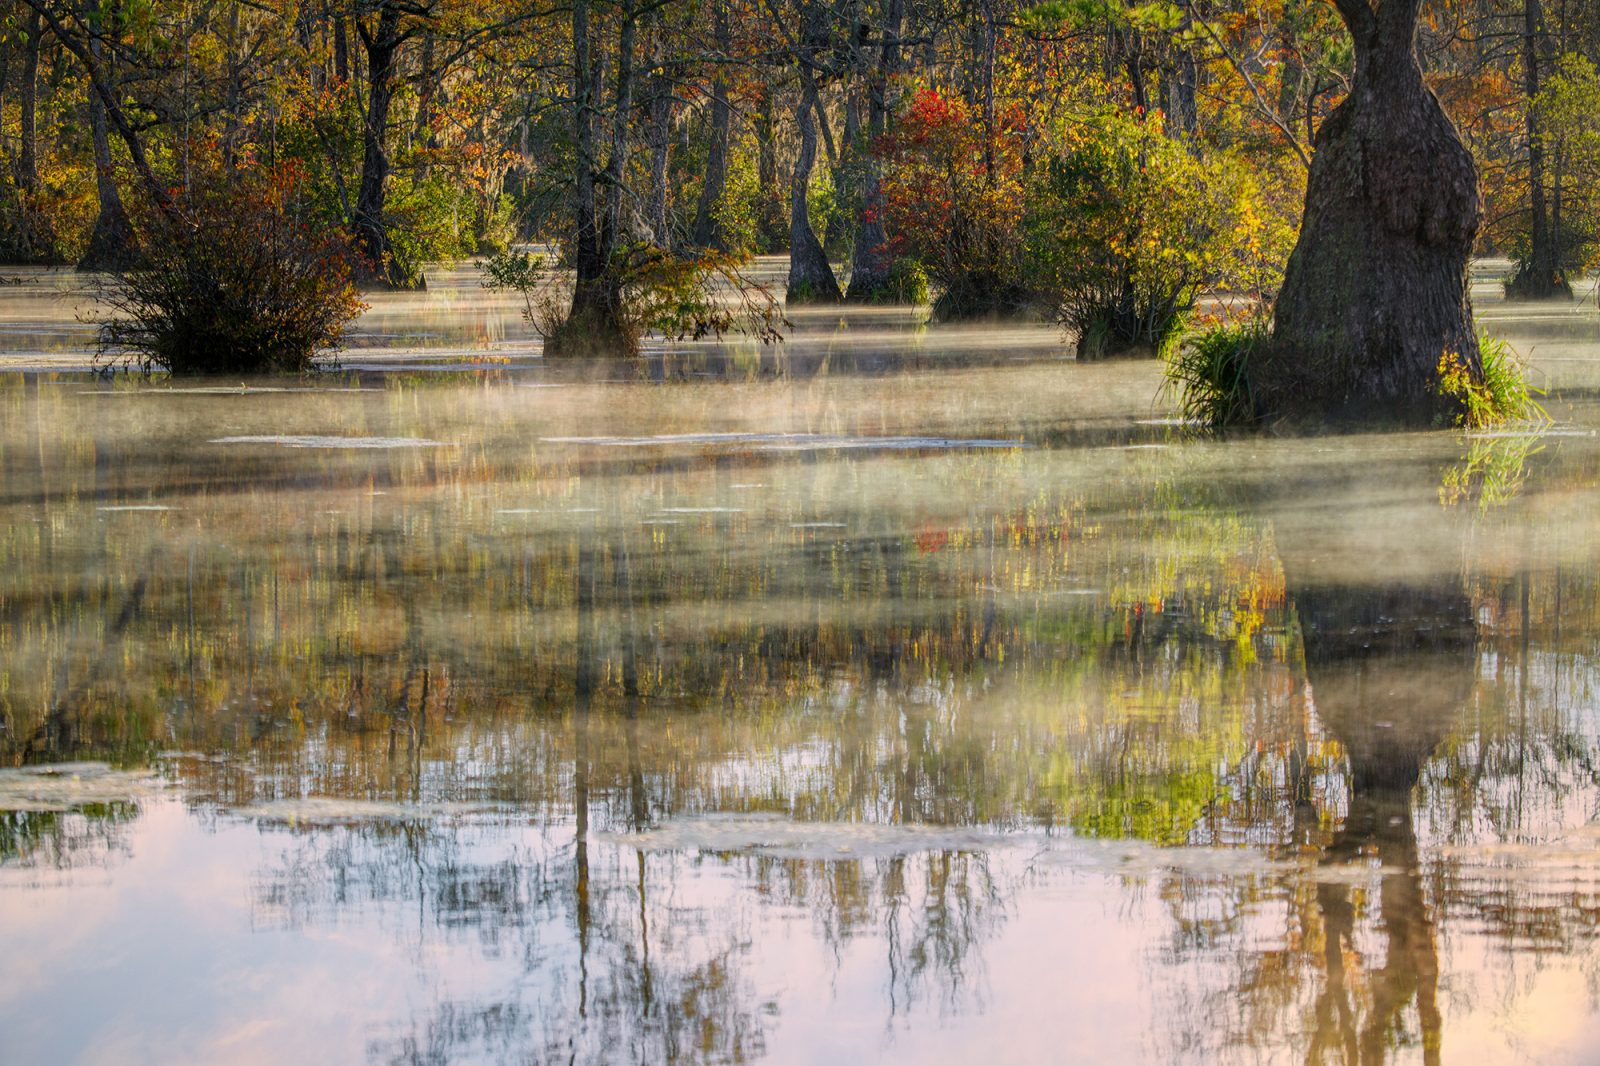 The mystery of the early dawn swamp without anyone